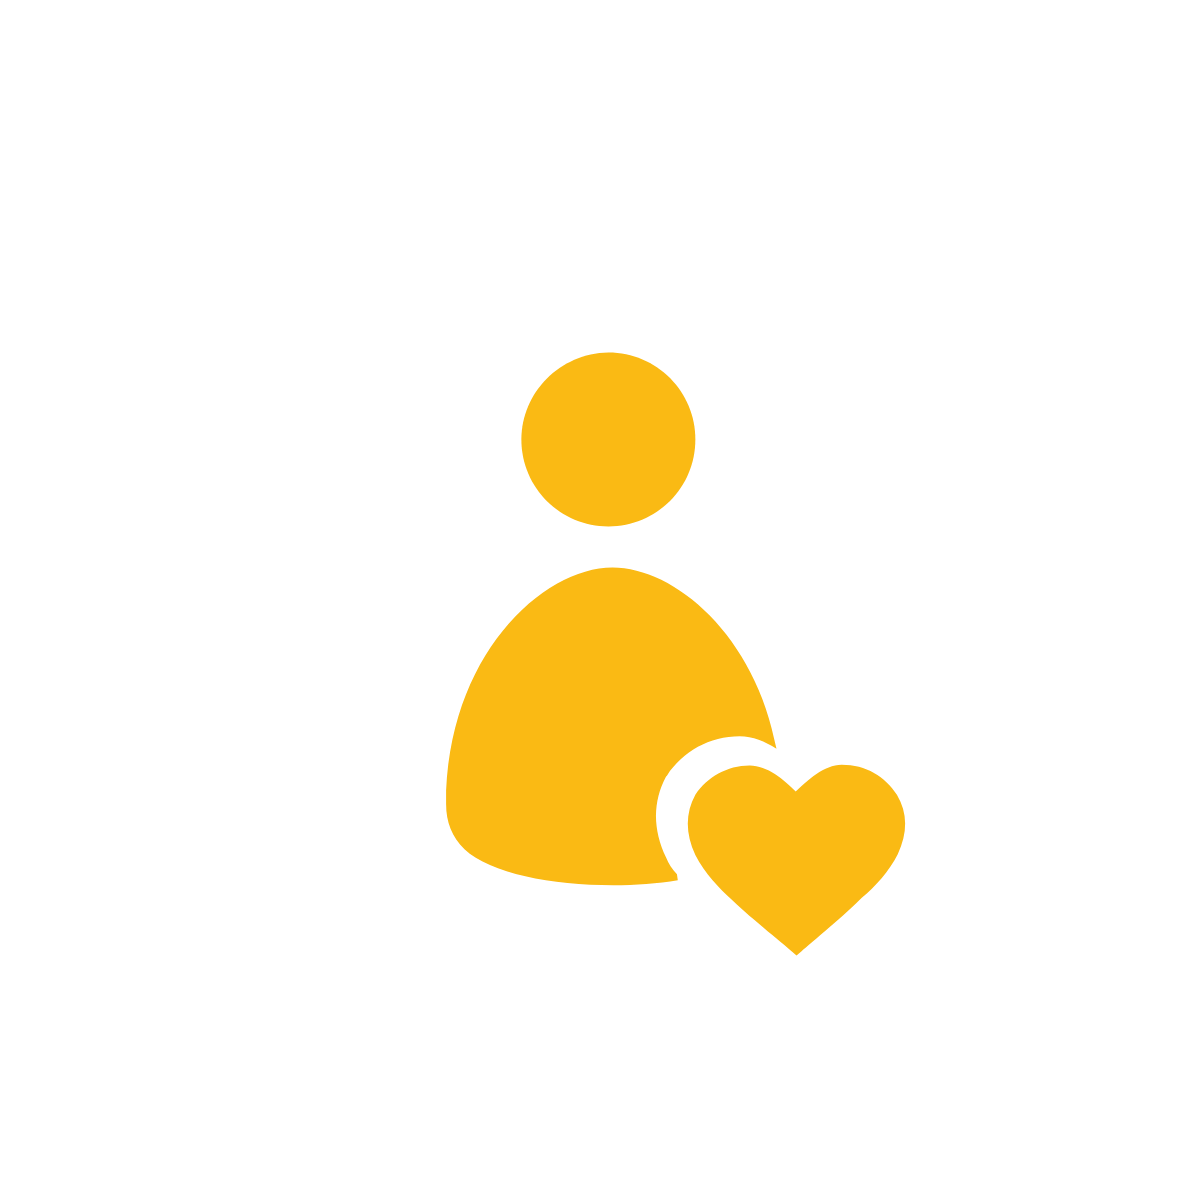 Icon of person with heart